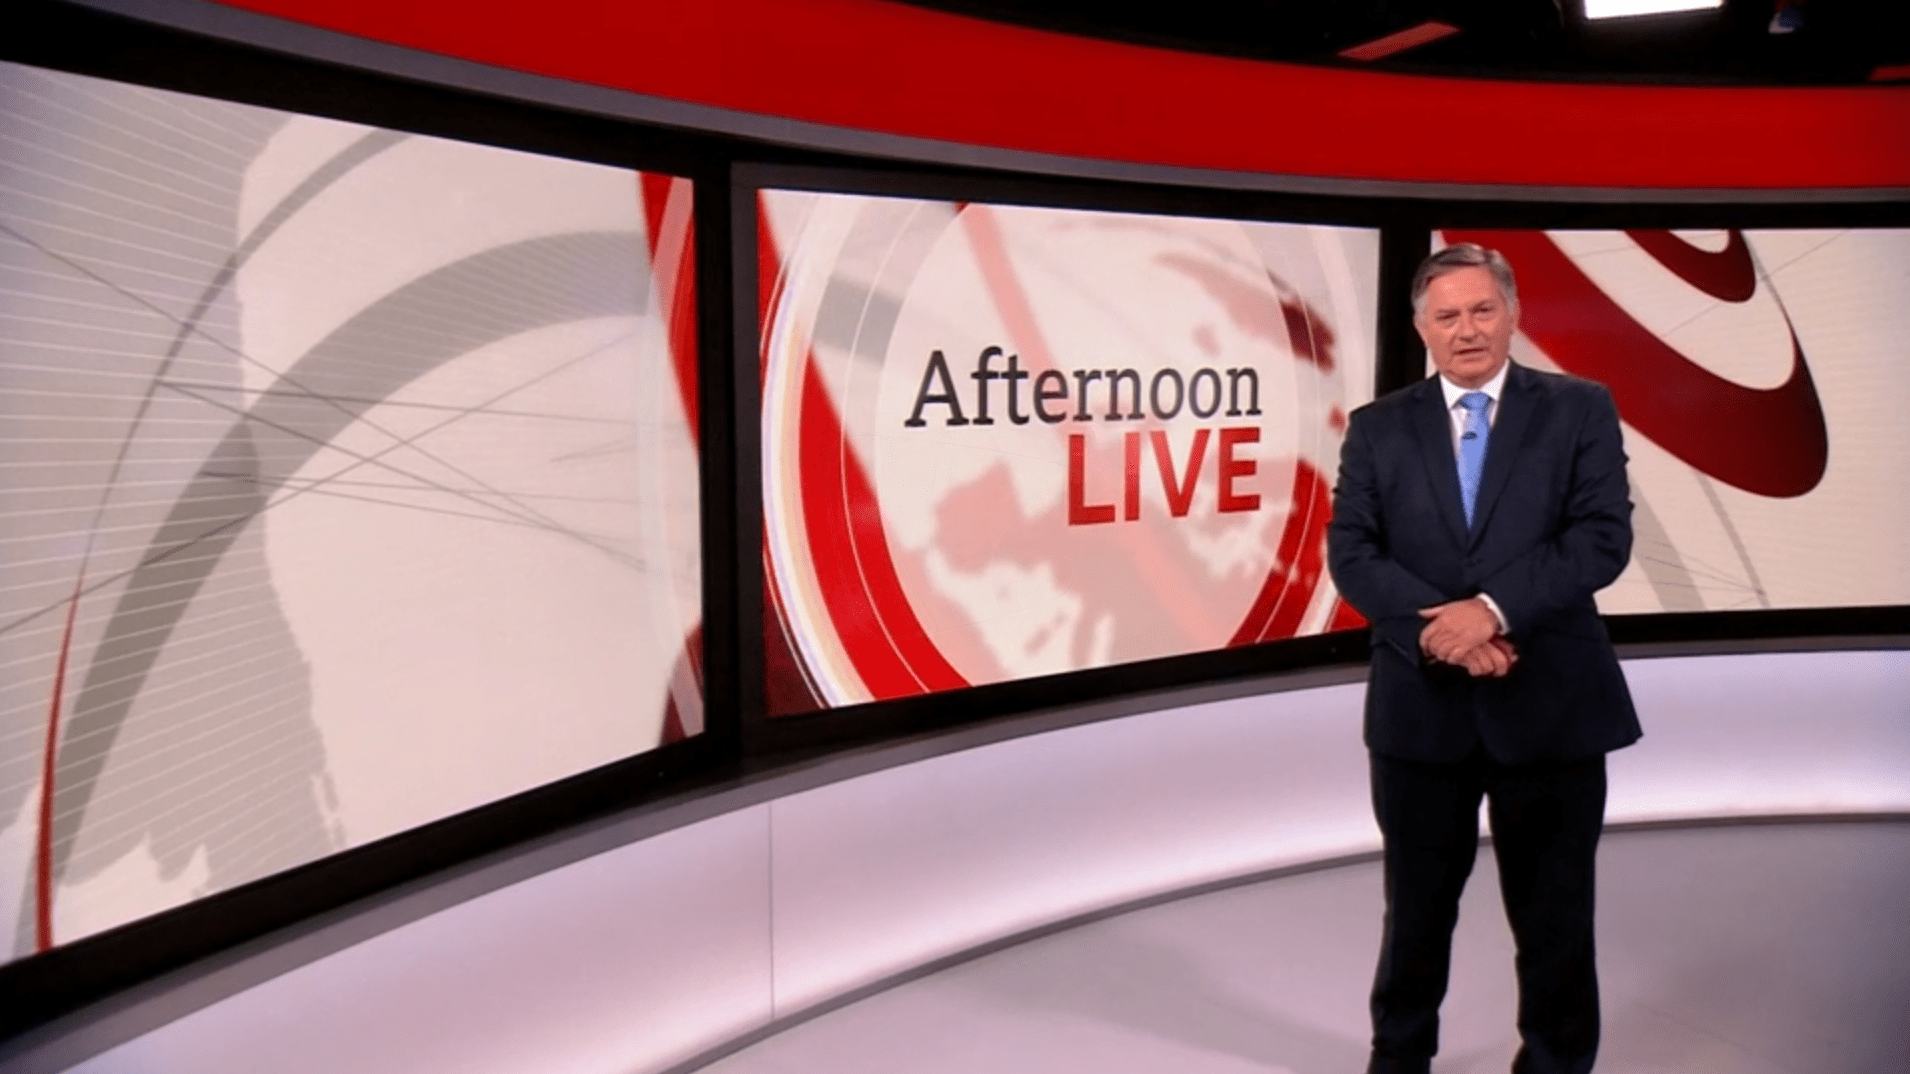 PICTURED: Afternoon Live studio presentation. Presenter: Simon McCoy.